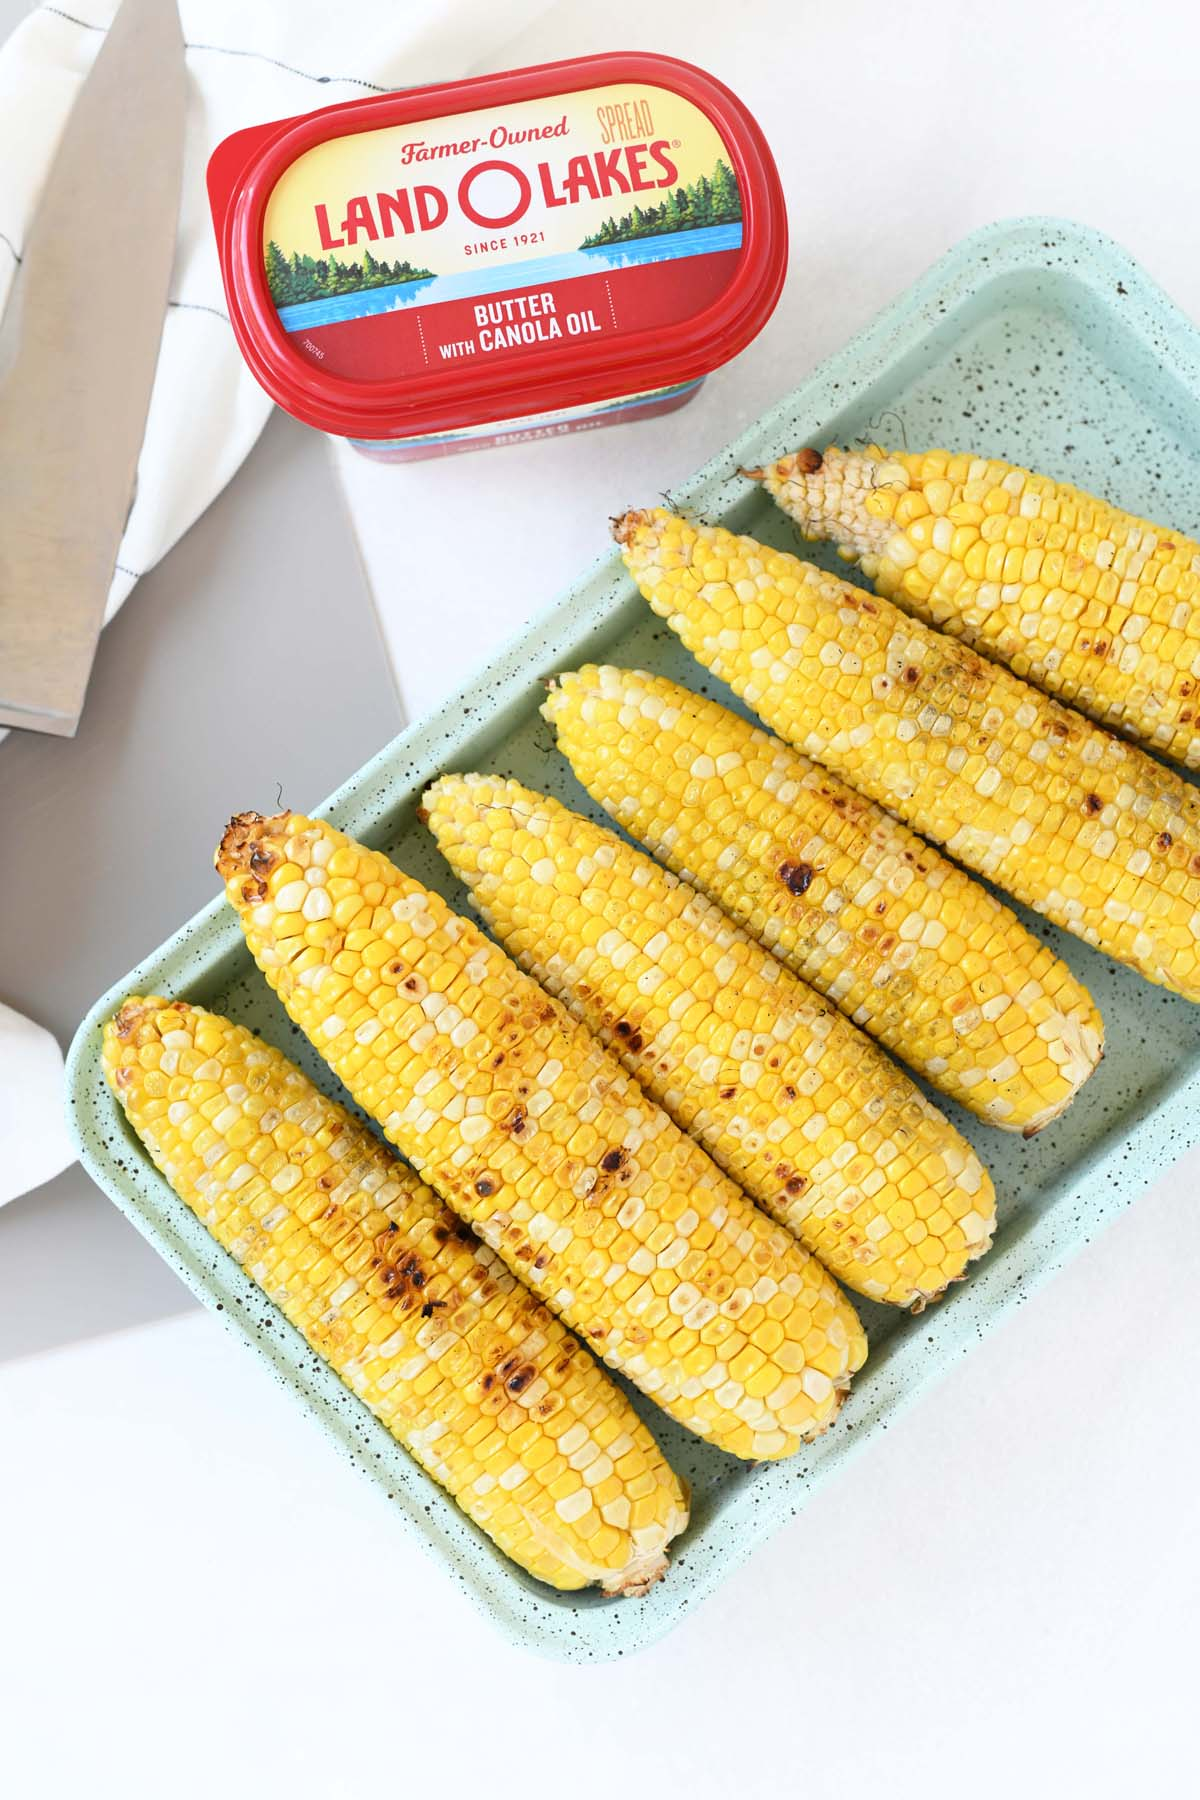 Grilled Corn on the Cob in a blue dish with Land O Lakes Butter nearby.